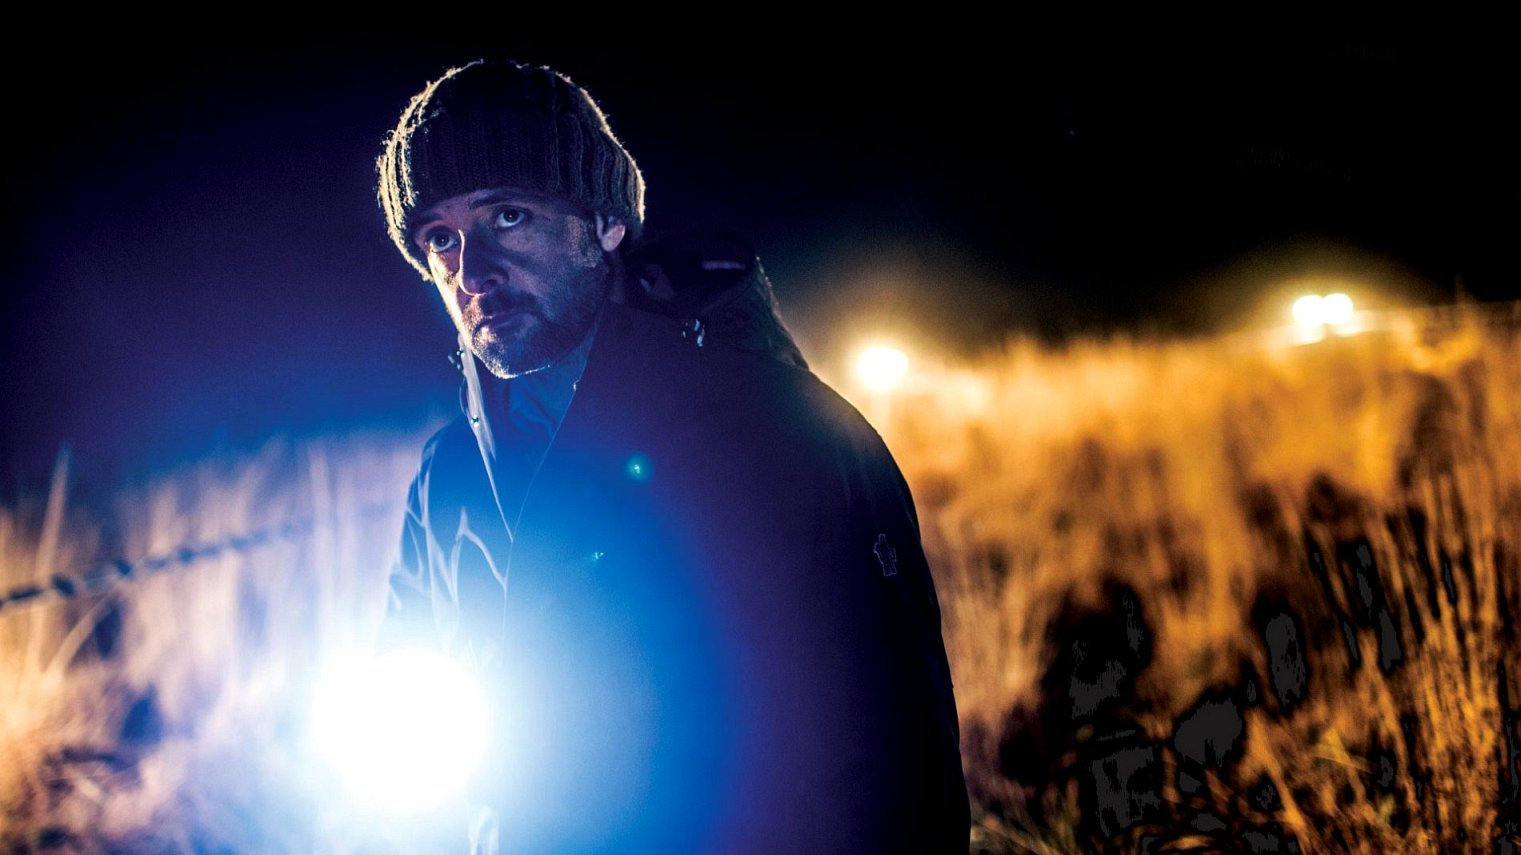 Hinterland Cast: Season 2 Stars & Main Characters